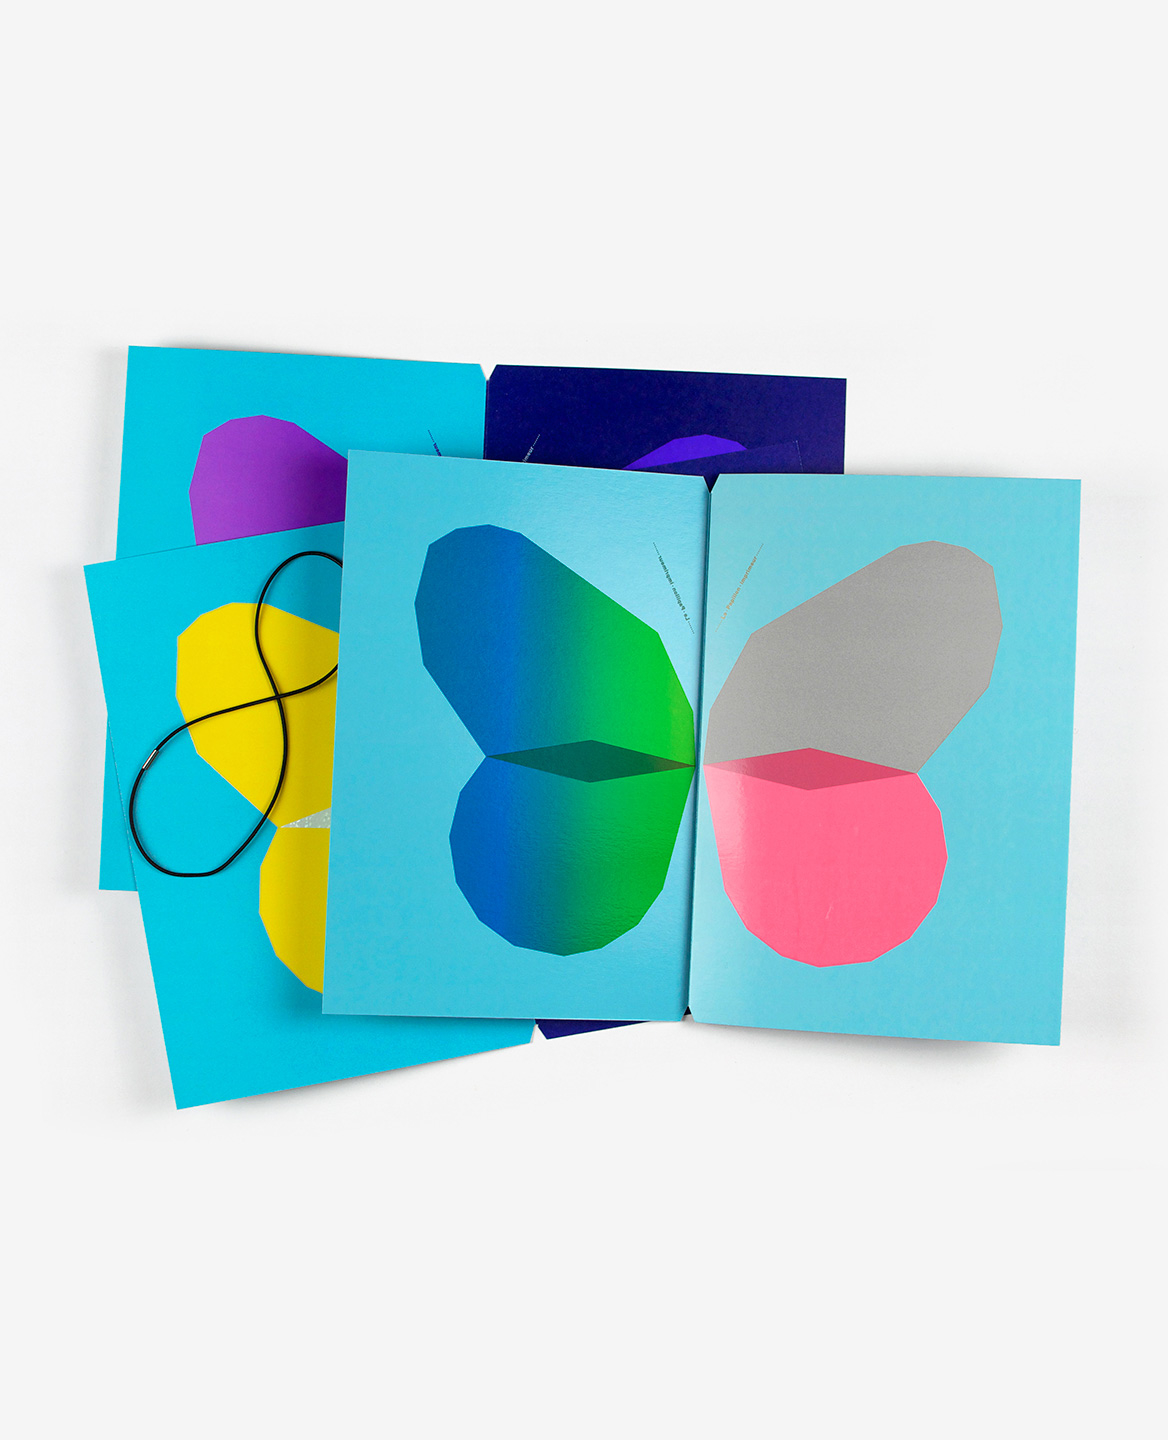 Violet, yellow, blue, green and pink butterflies from the book Le Papillon imprimeur